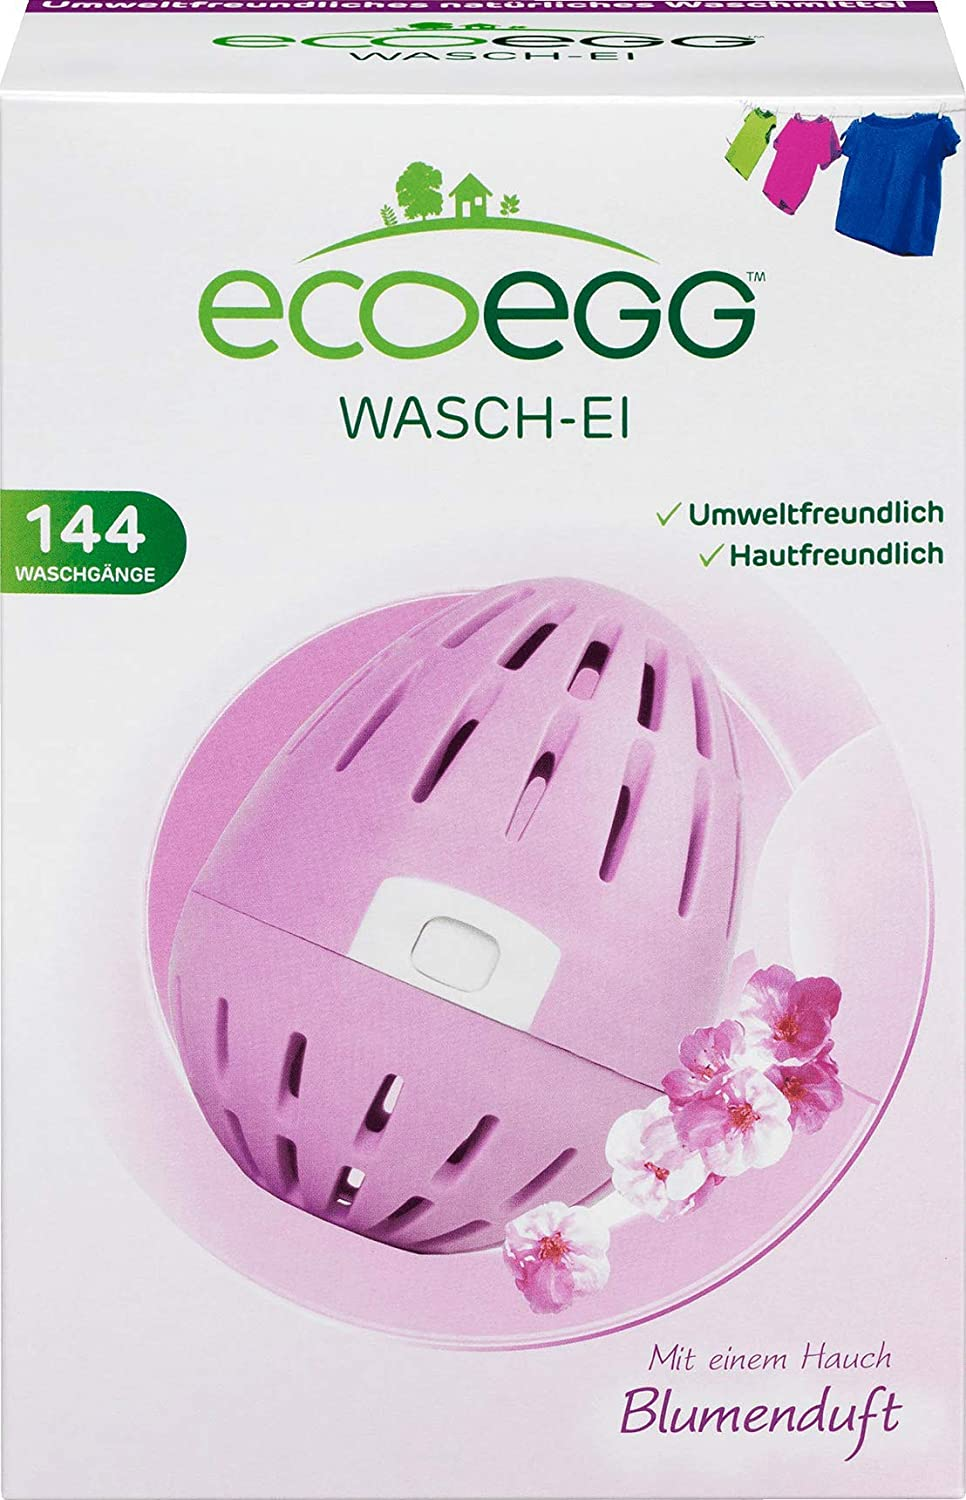 ECOEGG WASH Egg with Floral Natura Replaces - Special Campaign Max 69% OFF Detergents Scent